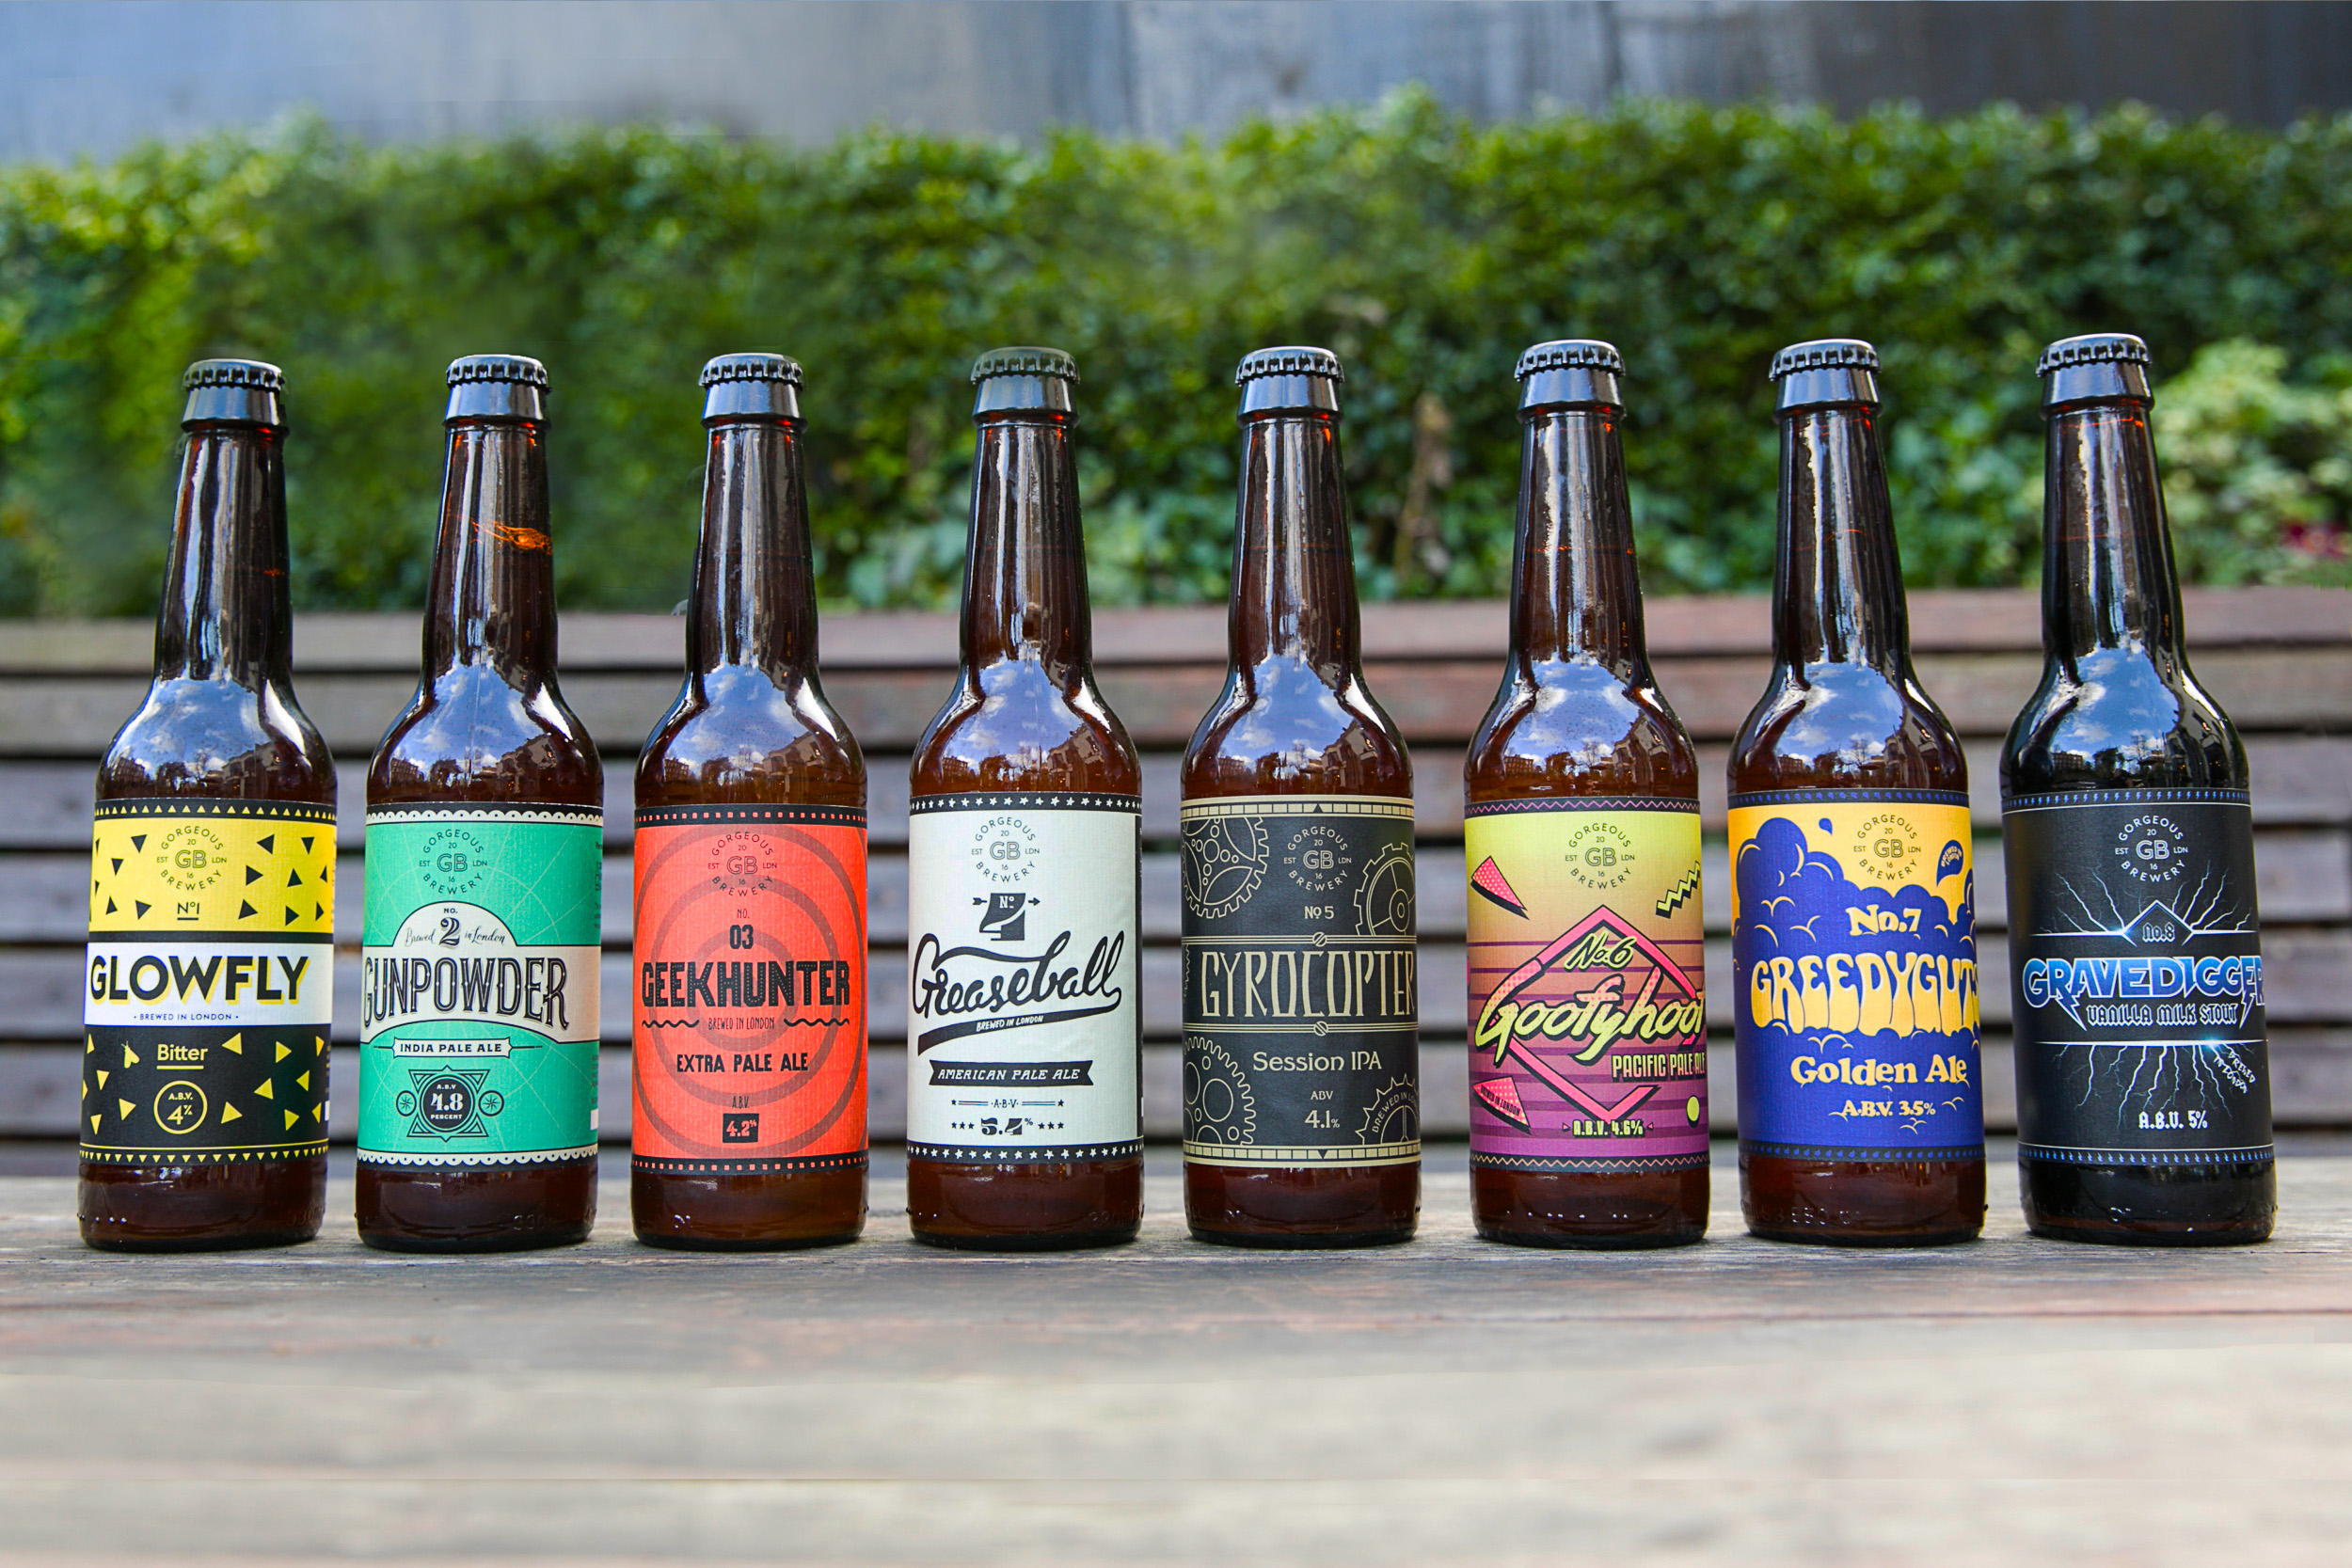 Gorgeous Brewery Bottles